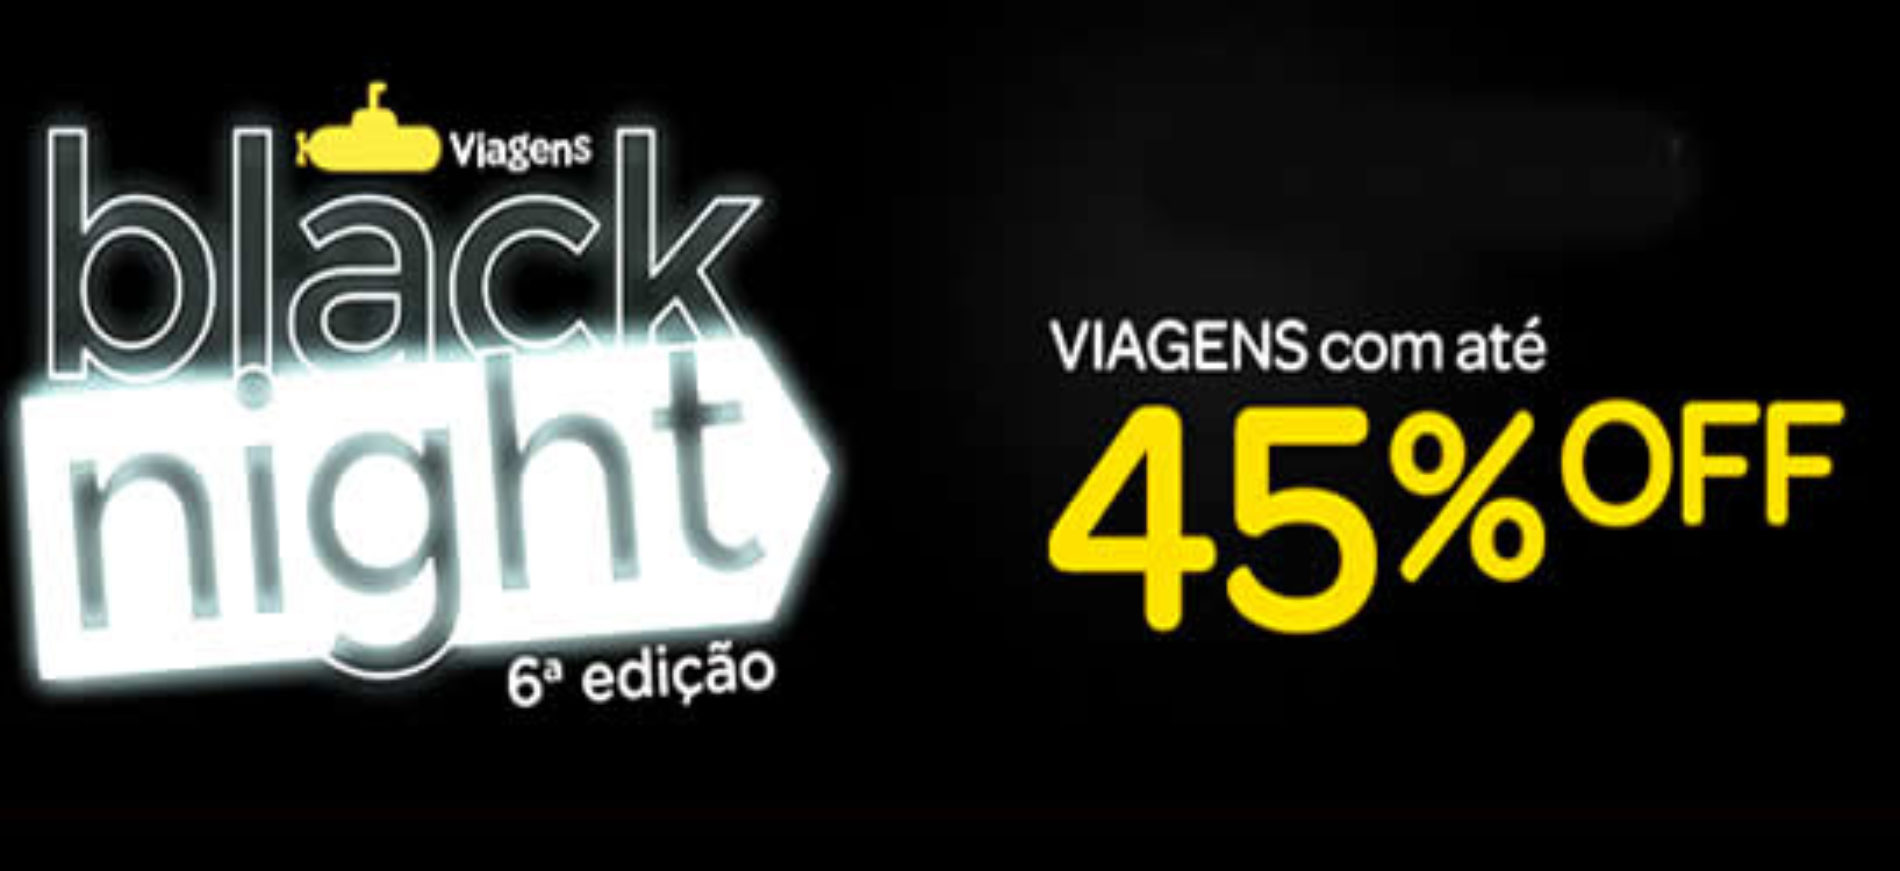 Black night submarino viagens 2015 – Viagens com 45% OFF